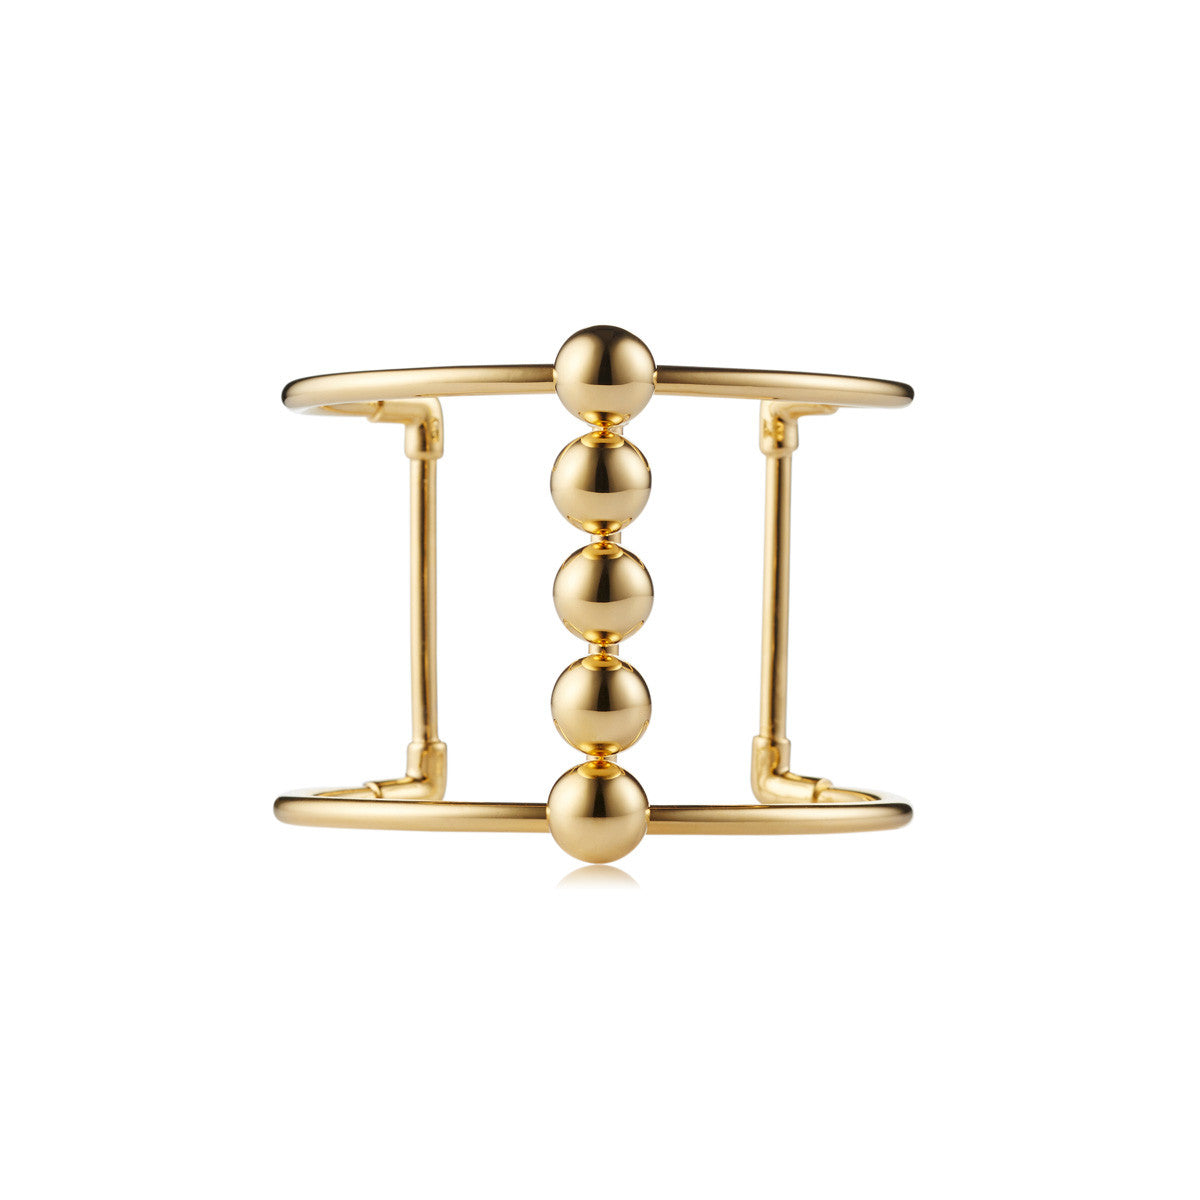 Solid brass, 18K gold plated Moonraker cuff bangle features a bold line of gleaming metal spheres along the centre – front